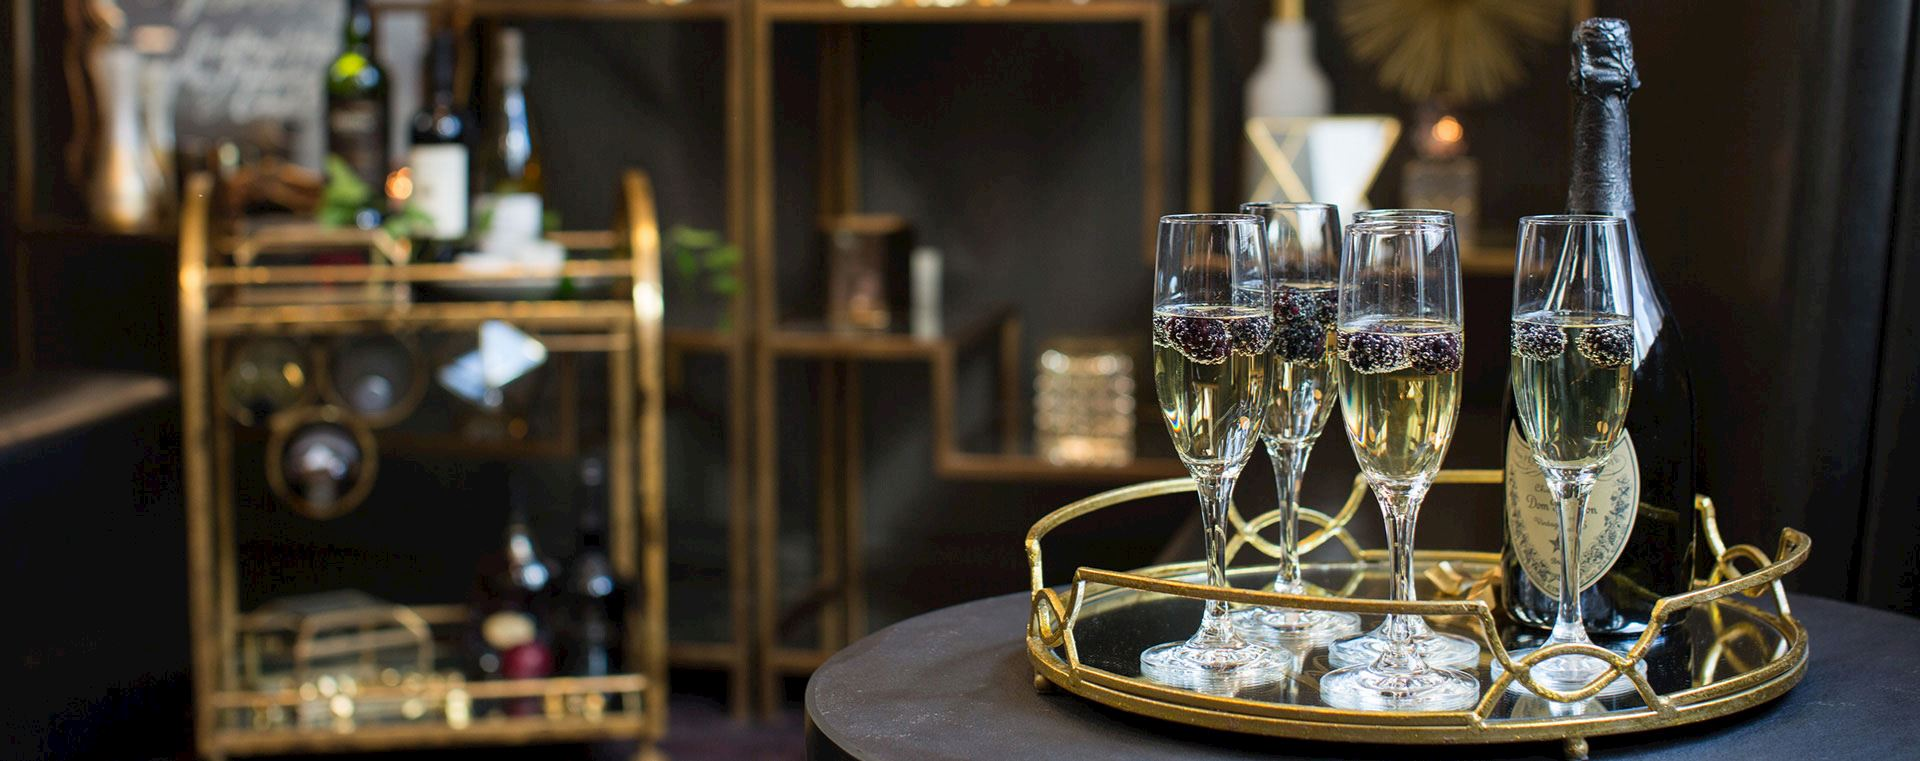 Hotel Ivy, A Luxury Collection Hotel, Minneapolis Meetings & Events